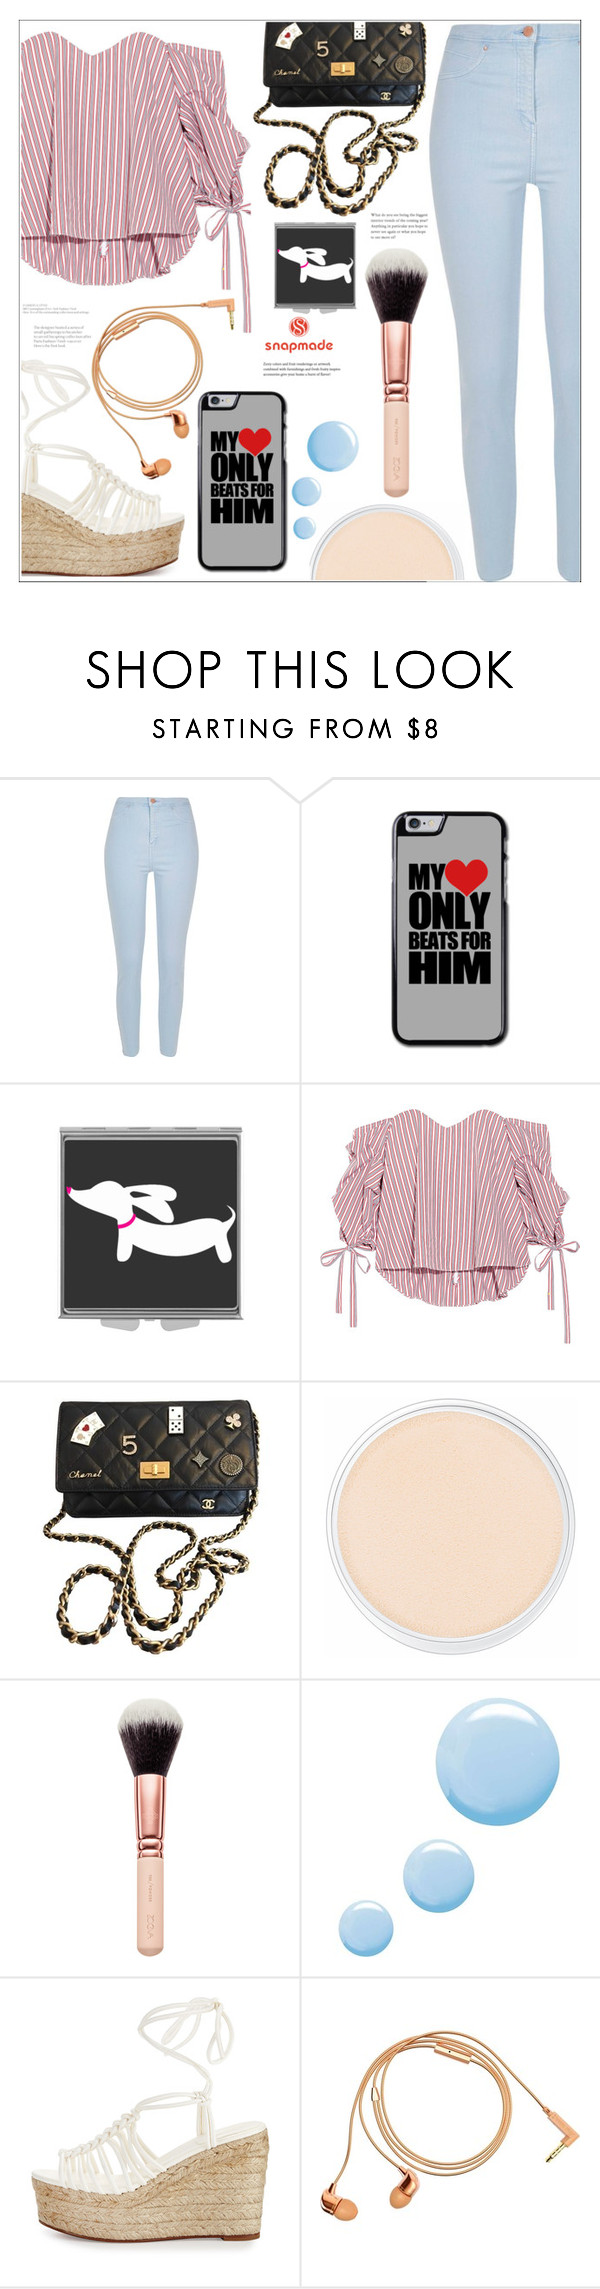 """""""Snapmade"""" by mycherryblossom ❤ liked on Polyvore featuring River Island, Caroline Constas, Chanel, Clinique, Topshop, Chloé, Happy Plugs, shopping, polyvoreeditorial and polyvorestyle"""